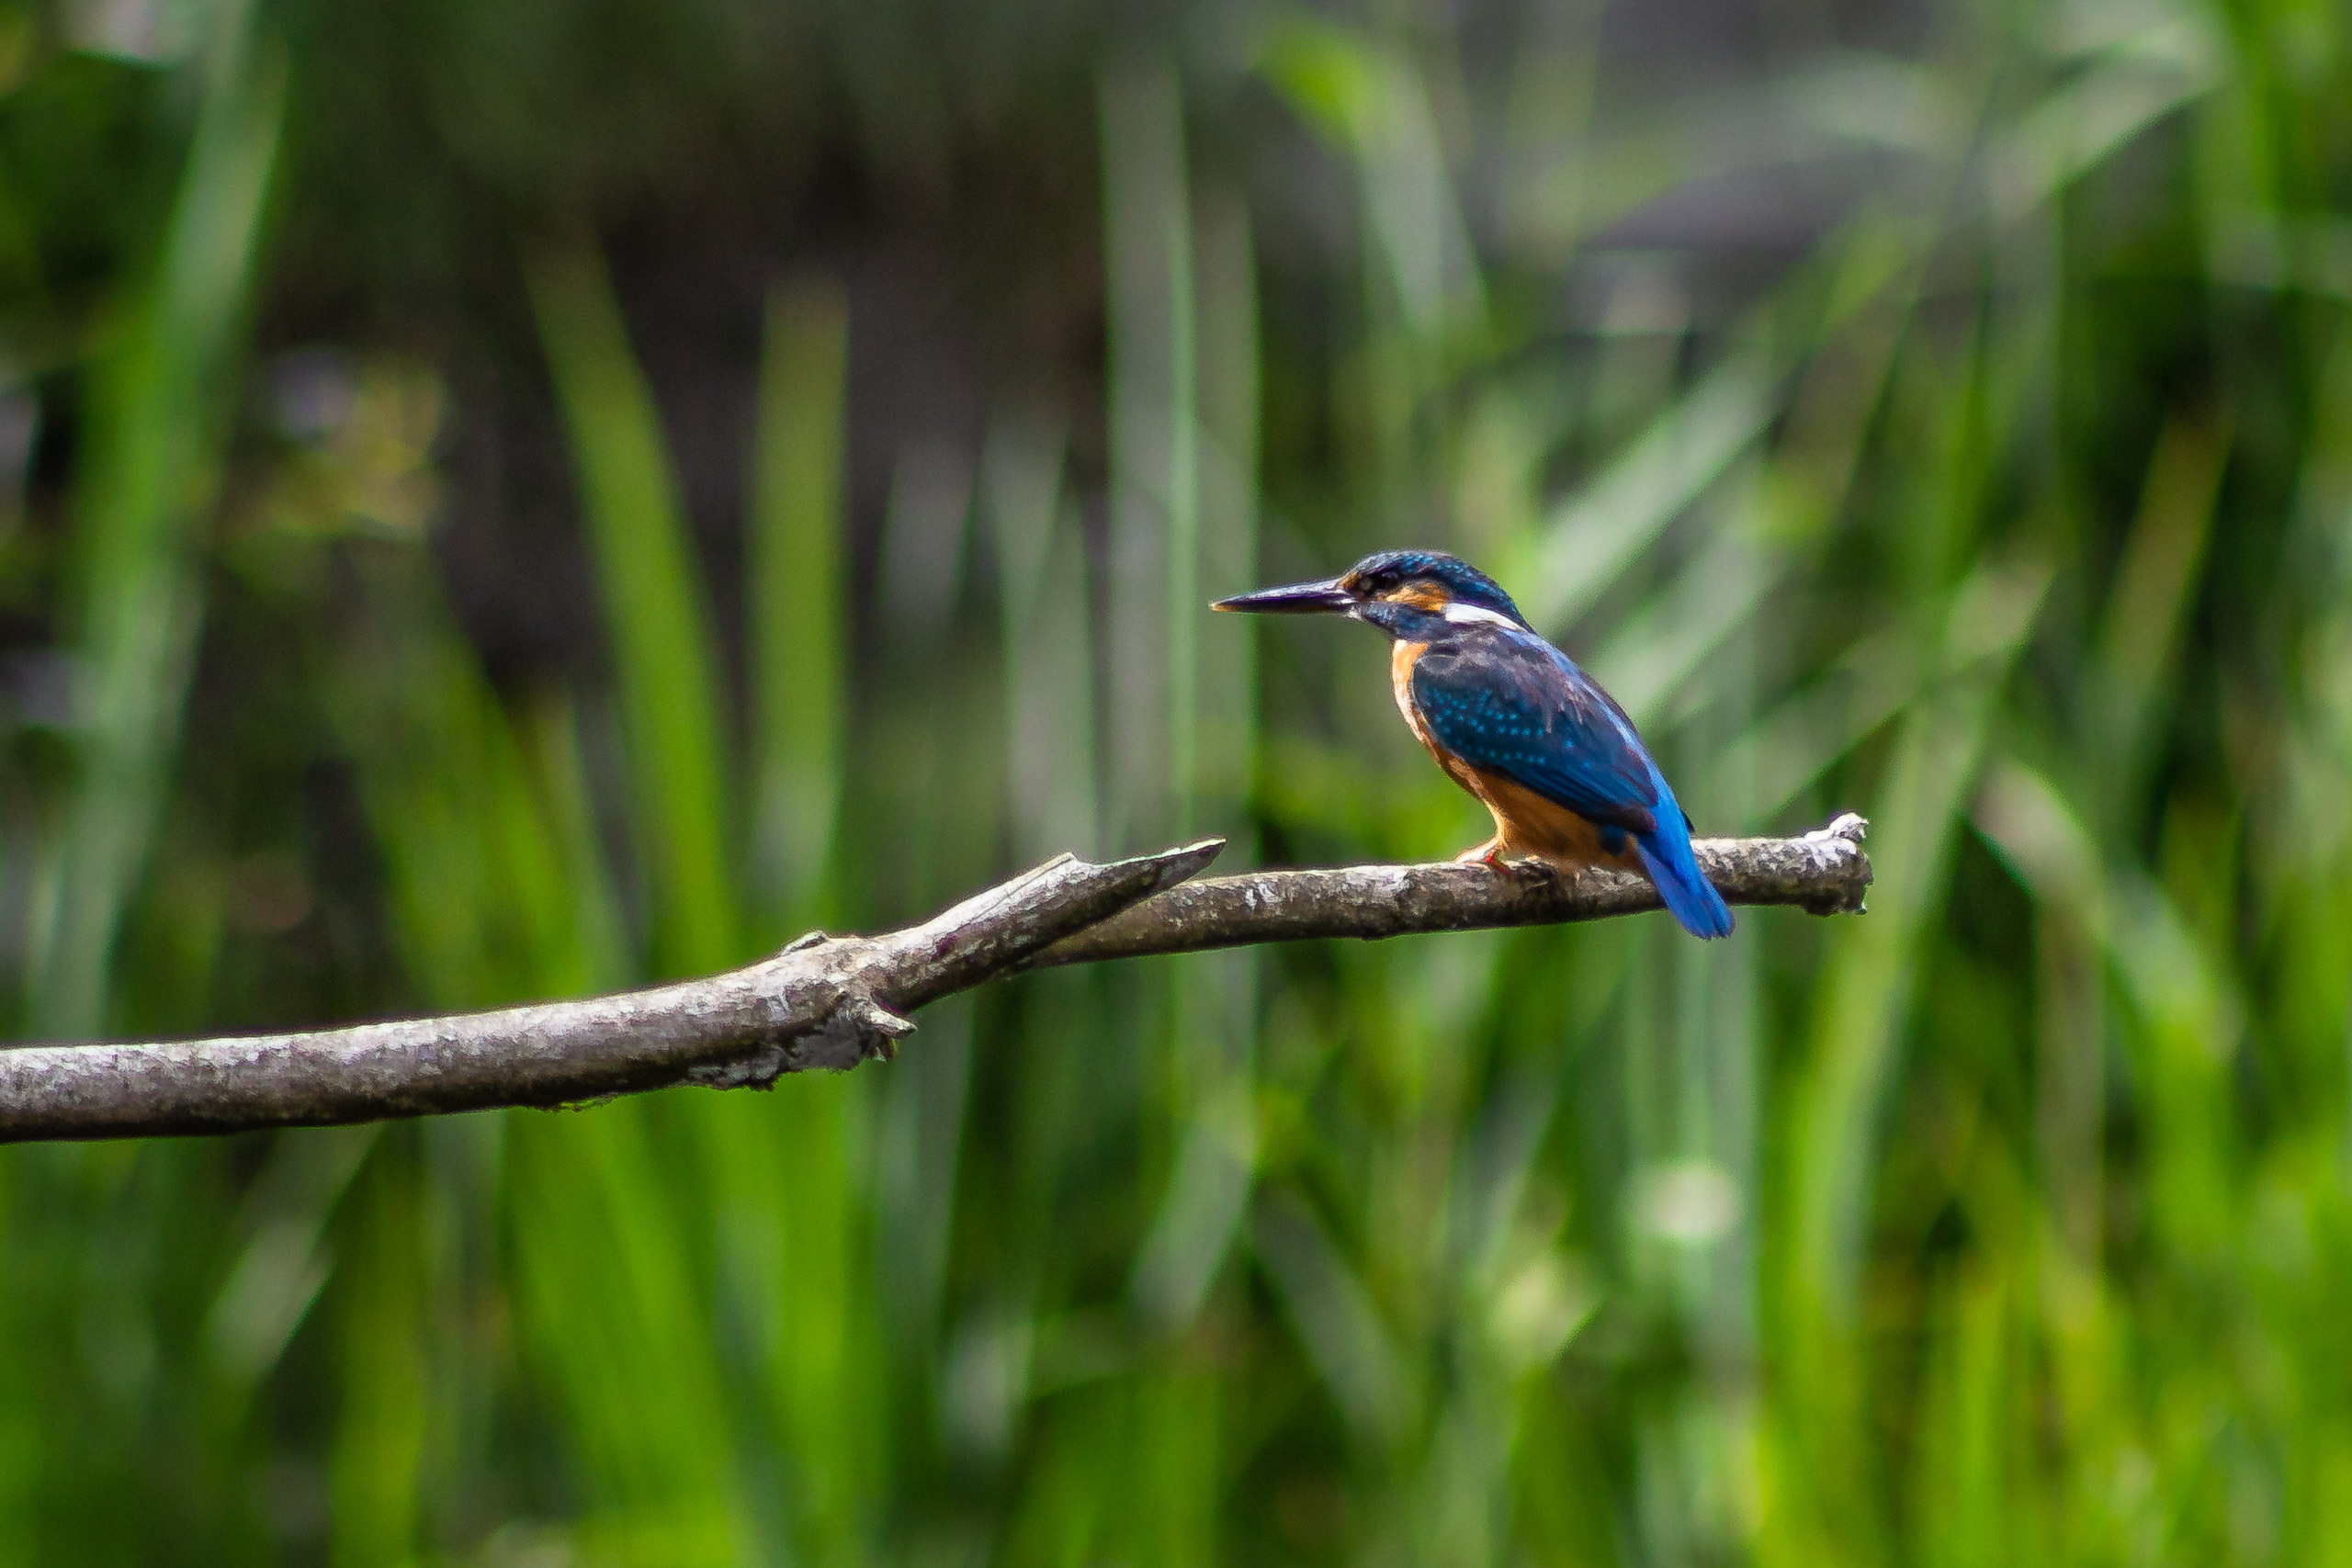 Kingfisher at La Sauge